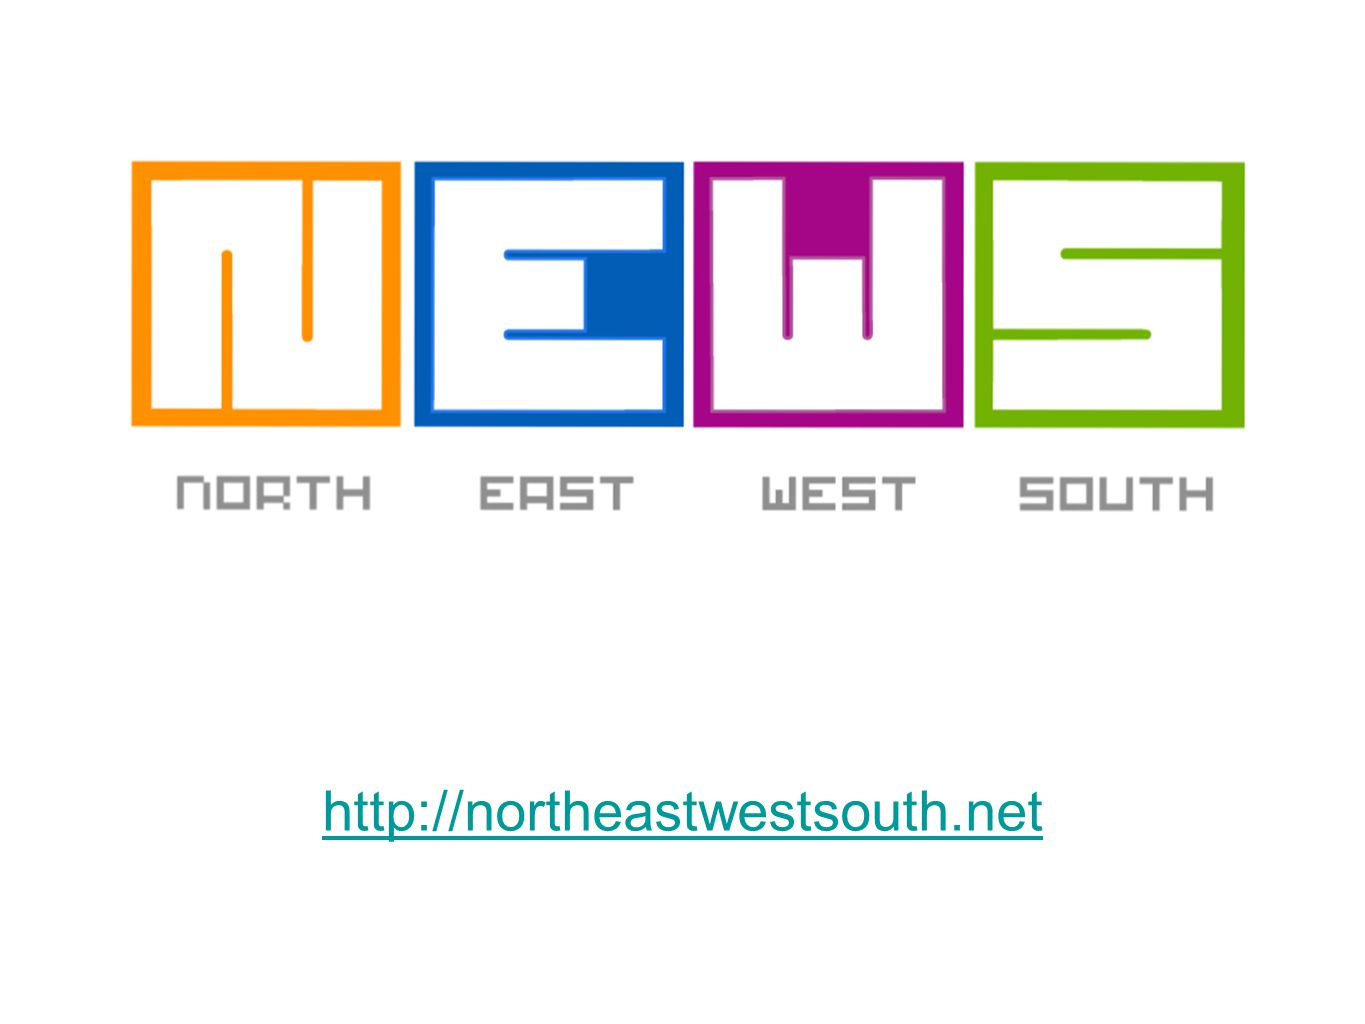 http://northeastwestsouth.net